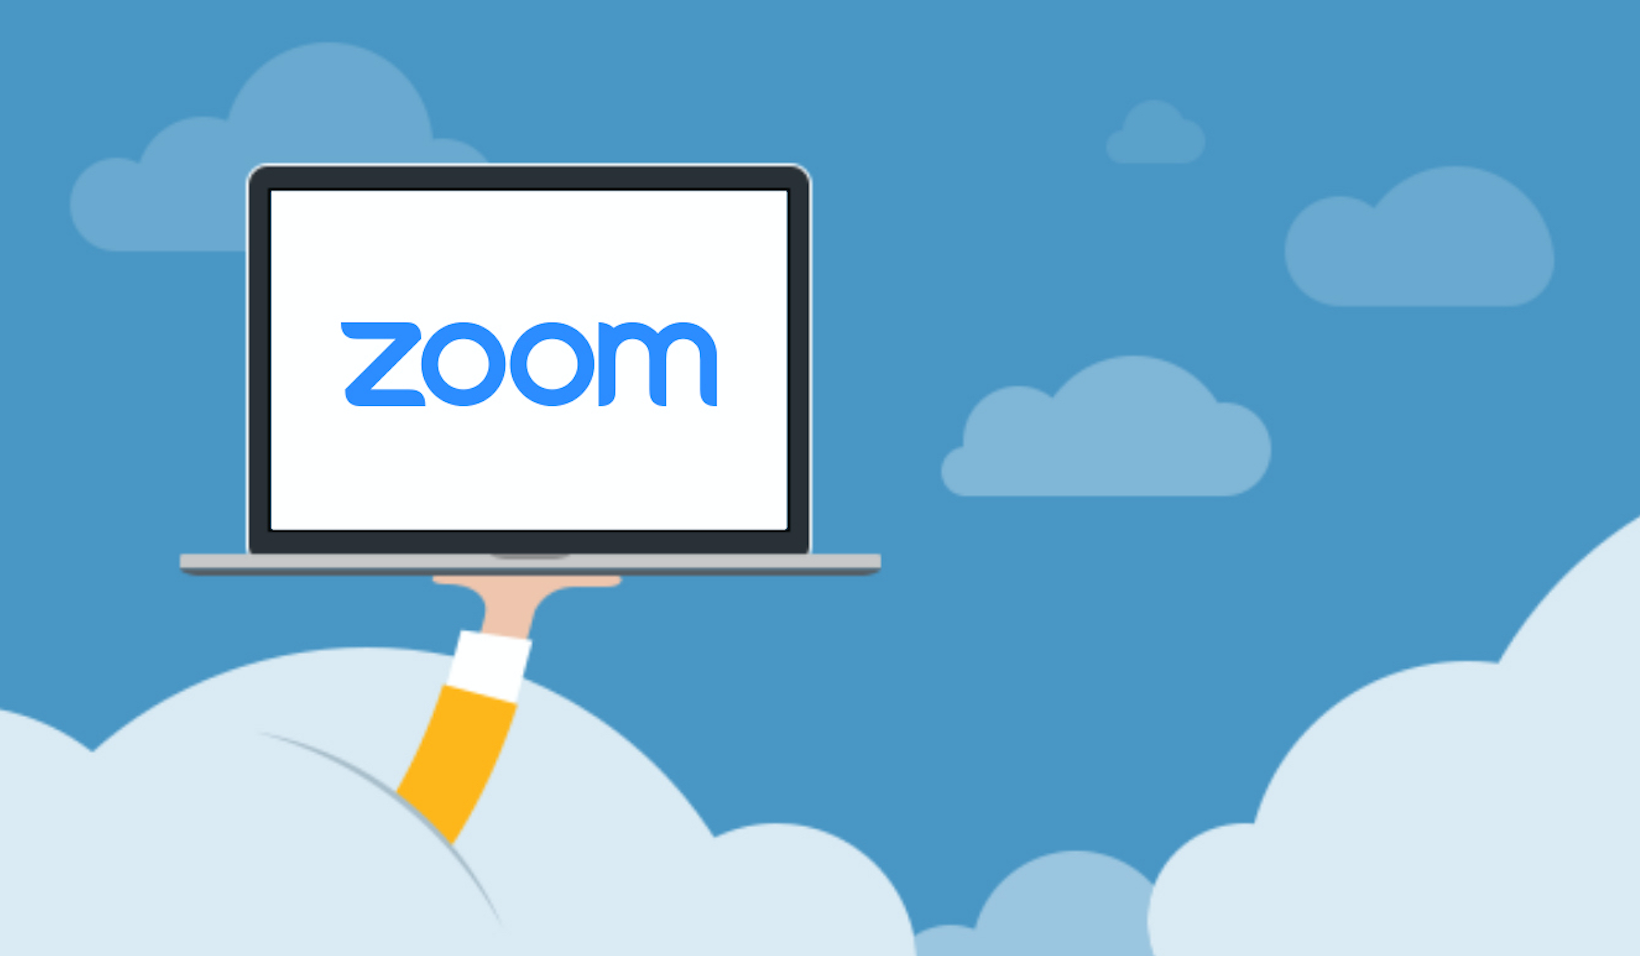 Class will be taking place on zoom